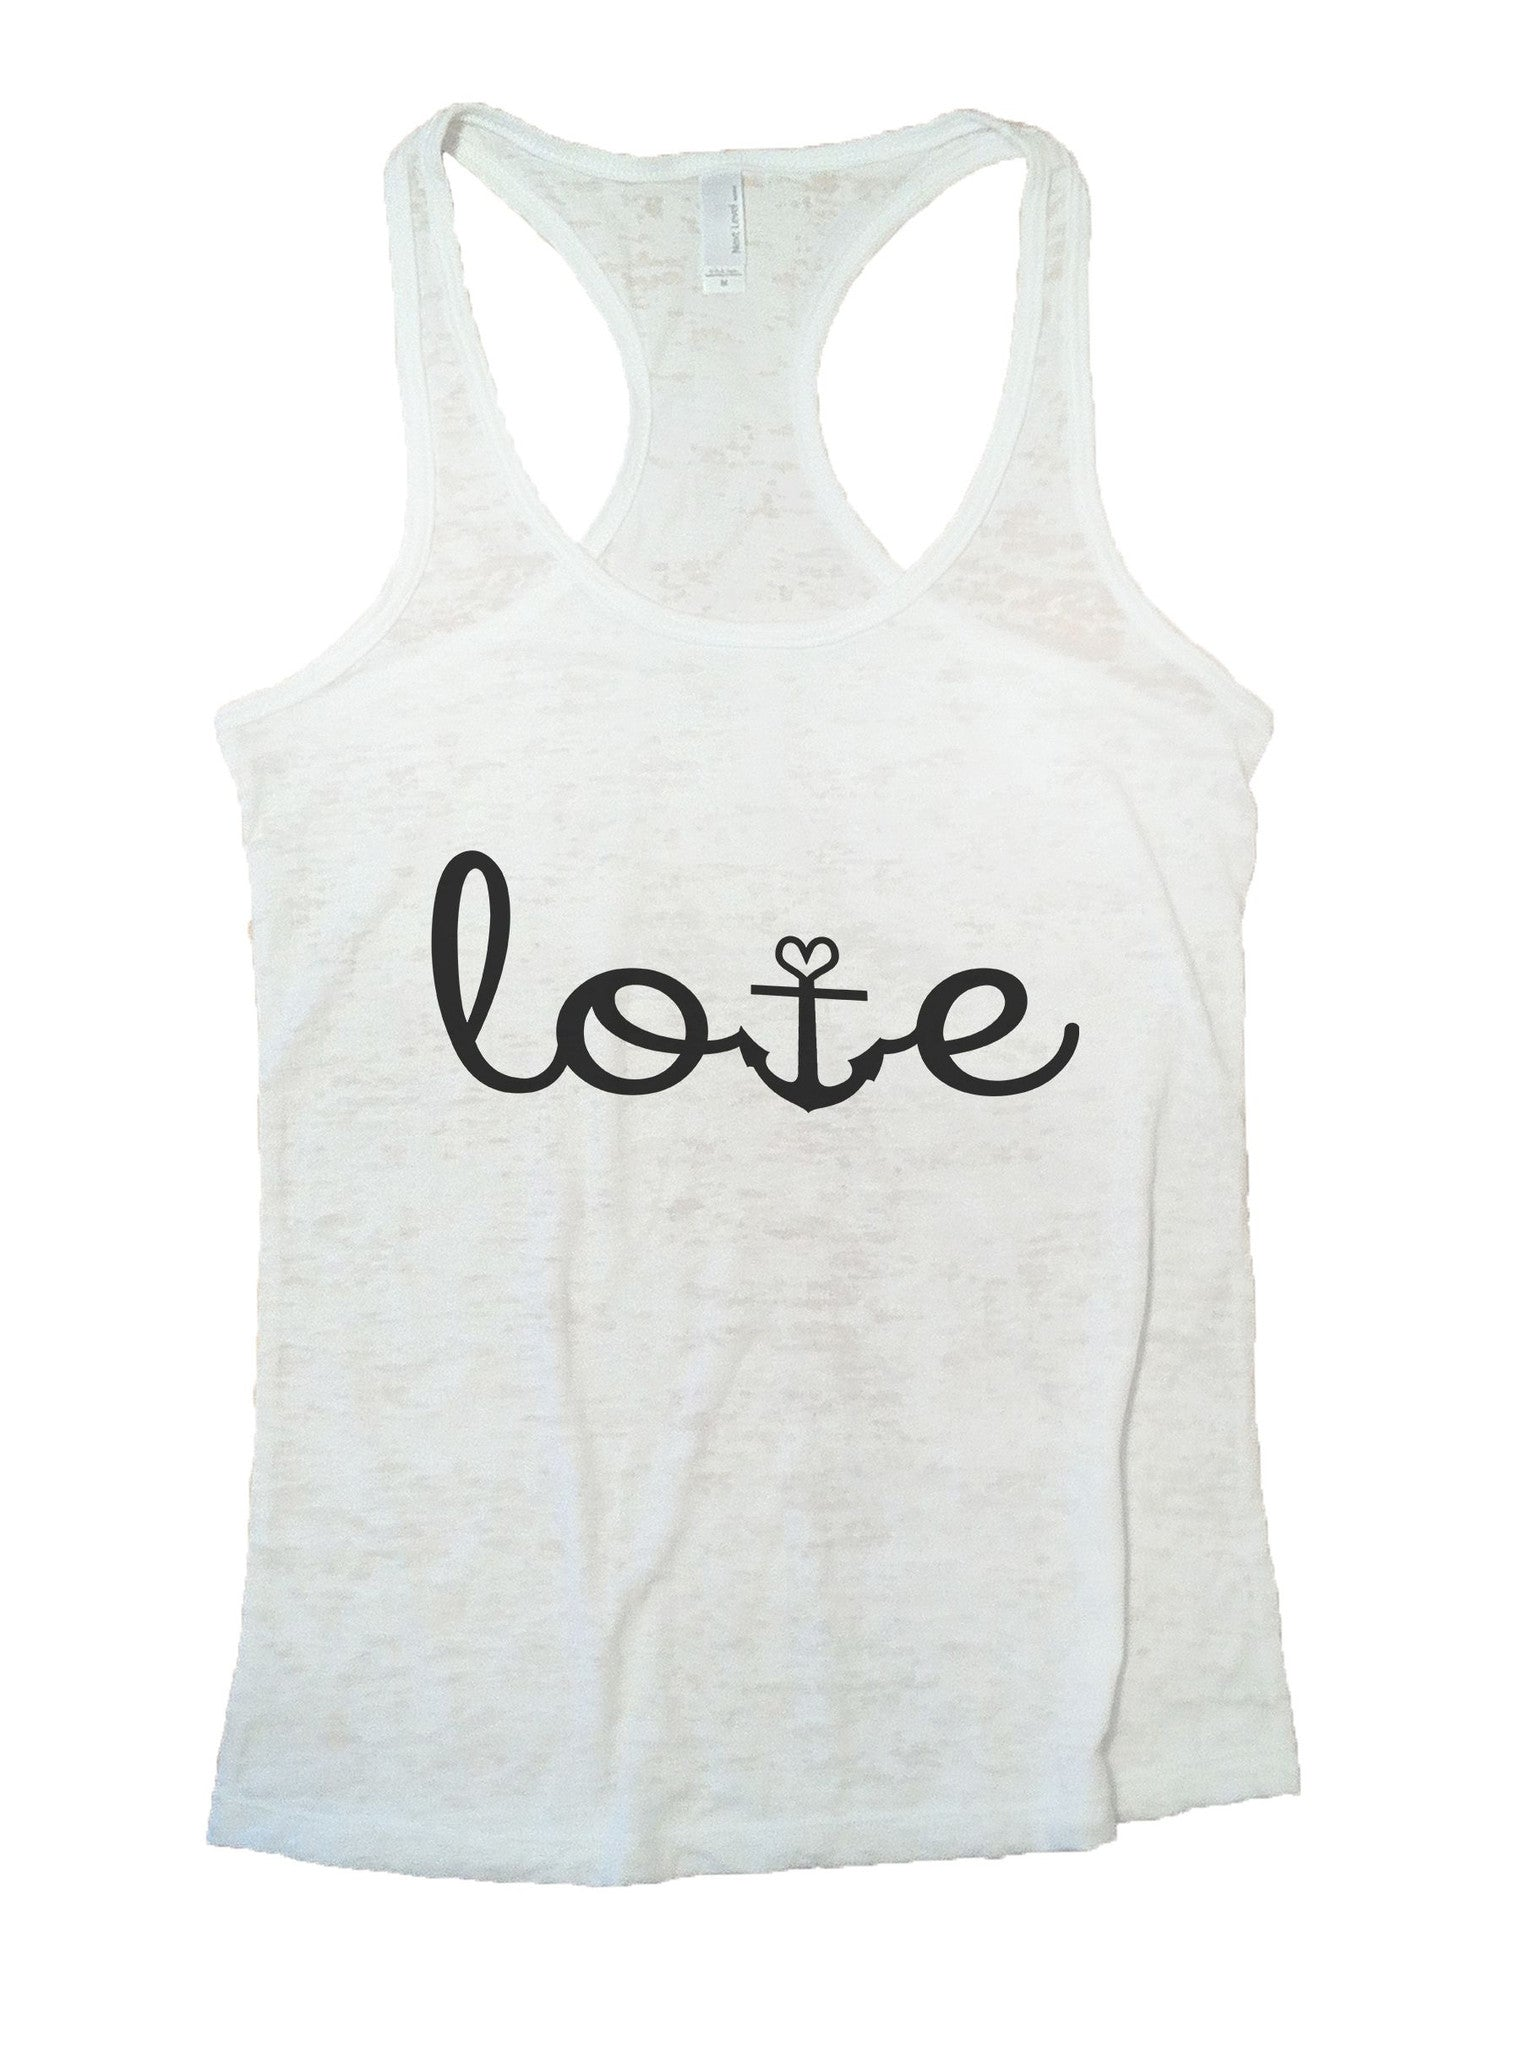 Love Burnout Tank Top By BurnoutTankTops.com - 935 - Funny Shirts Tank Tops Burnouts and Triblends  - 2